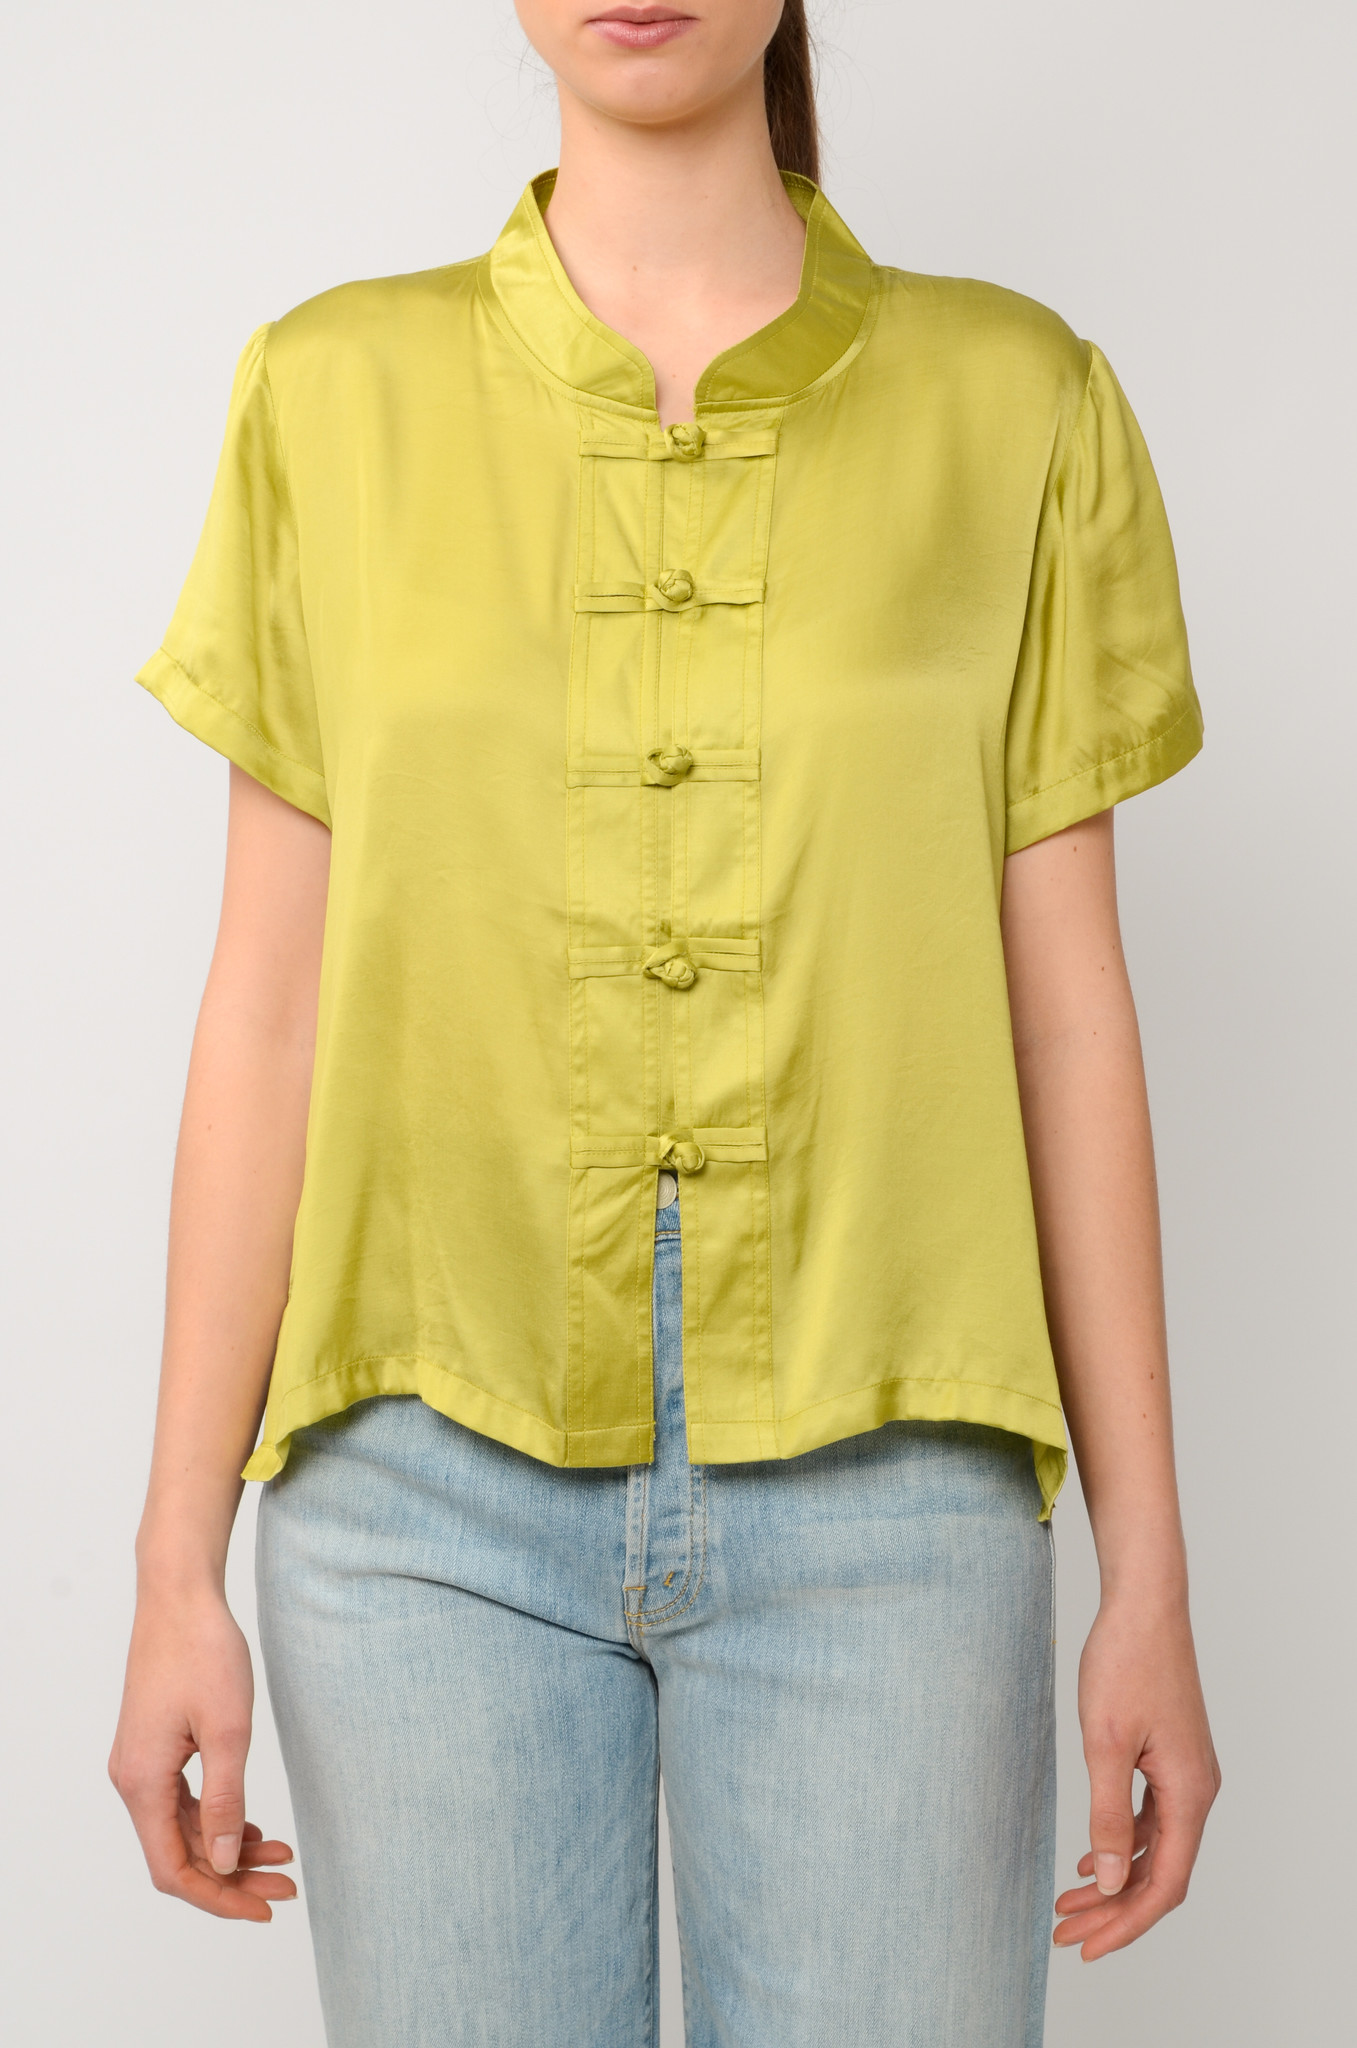 LOTUS TOP IN OLIVE-1